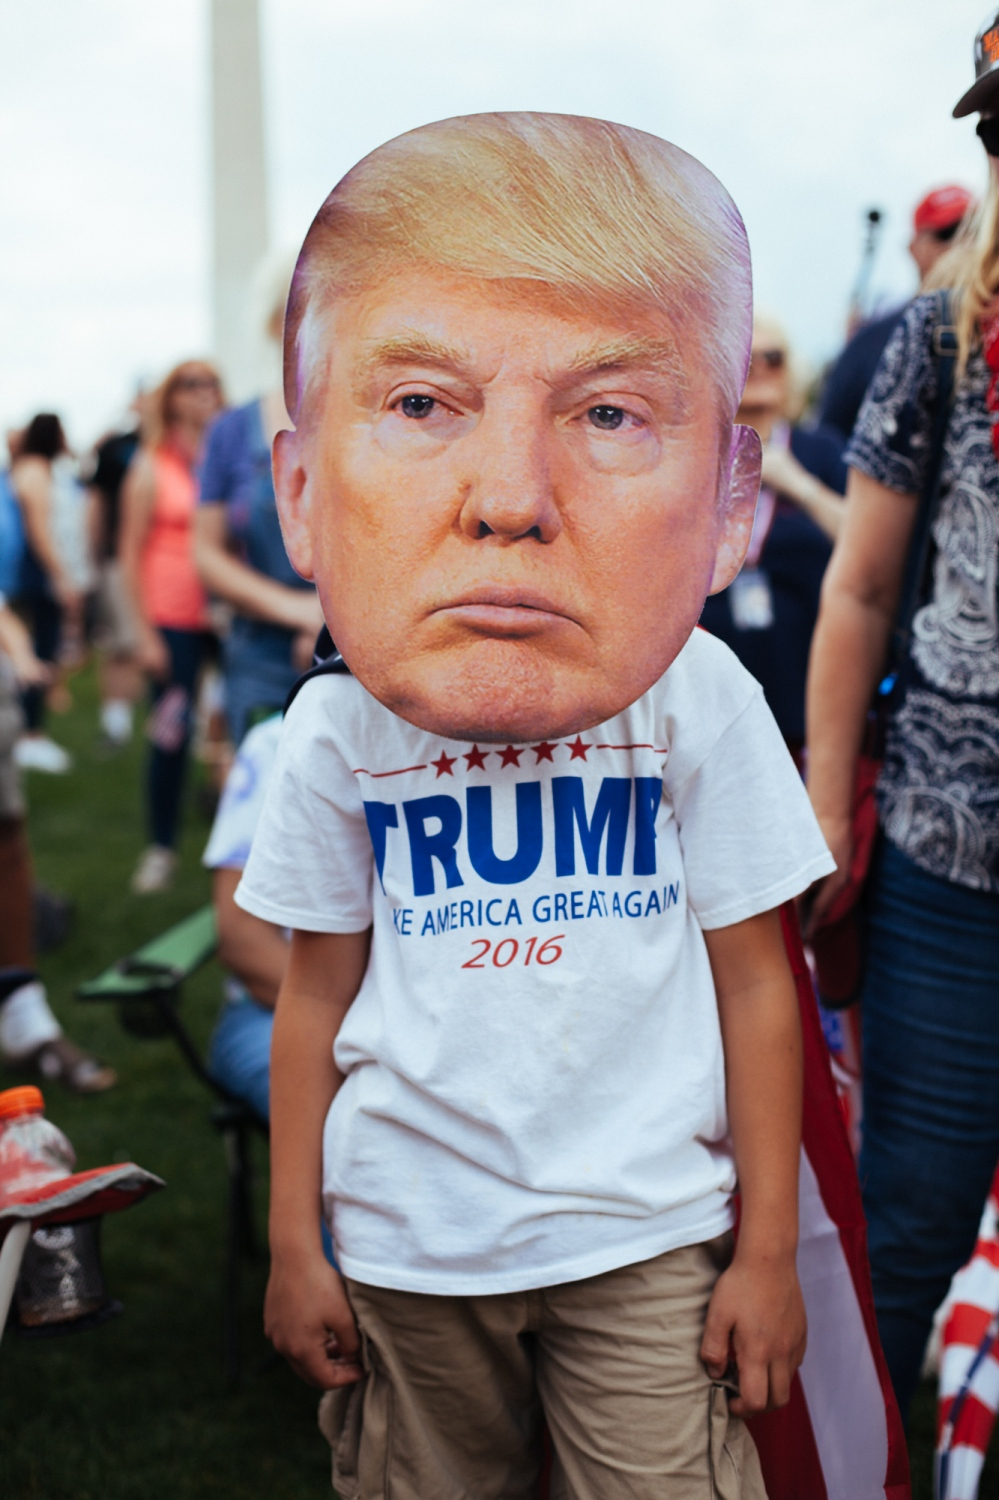 A young boy wears a cut-out Donald Trump mask during the #MOAR (Mother of all Rallies) demonstration at National Mall, Washington, D.C., U.S. September 16, 2017.